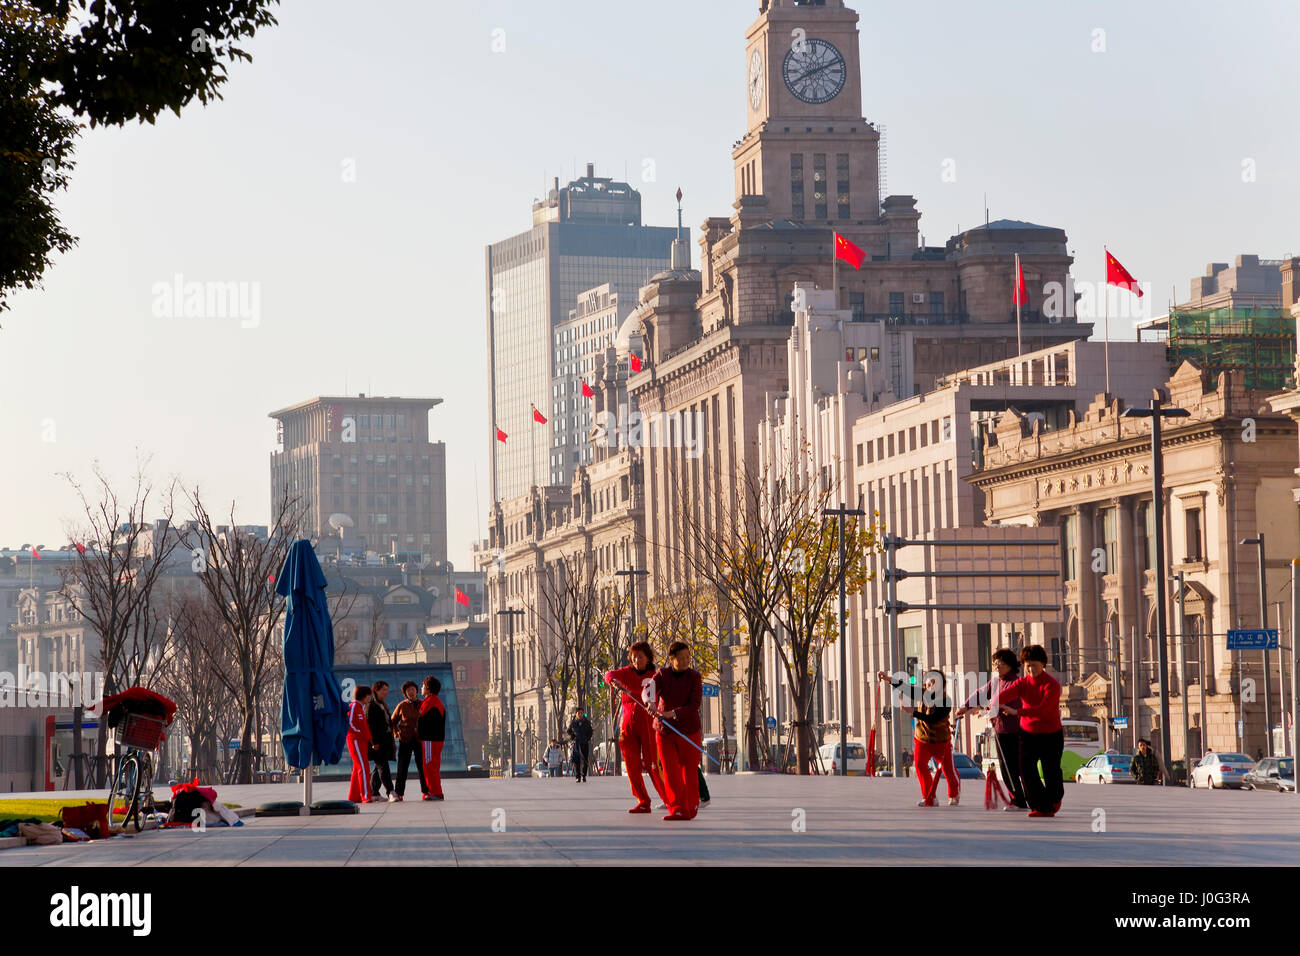 Tai Chi exercises, early morning, The Bund, Shanghai, China - Stock Image